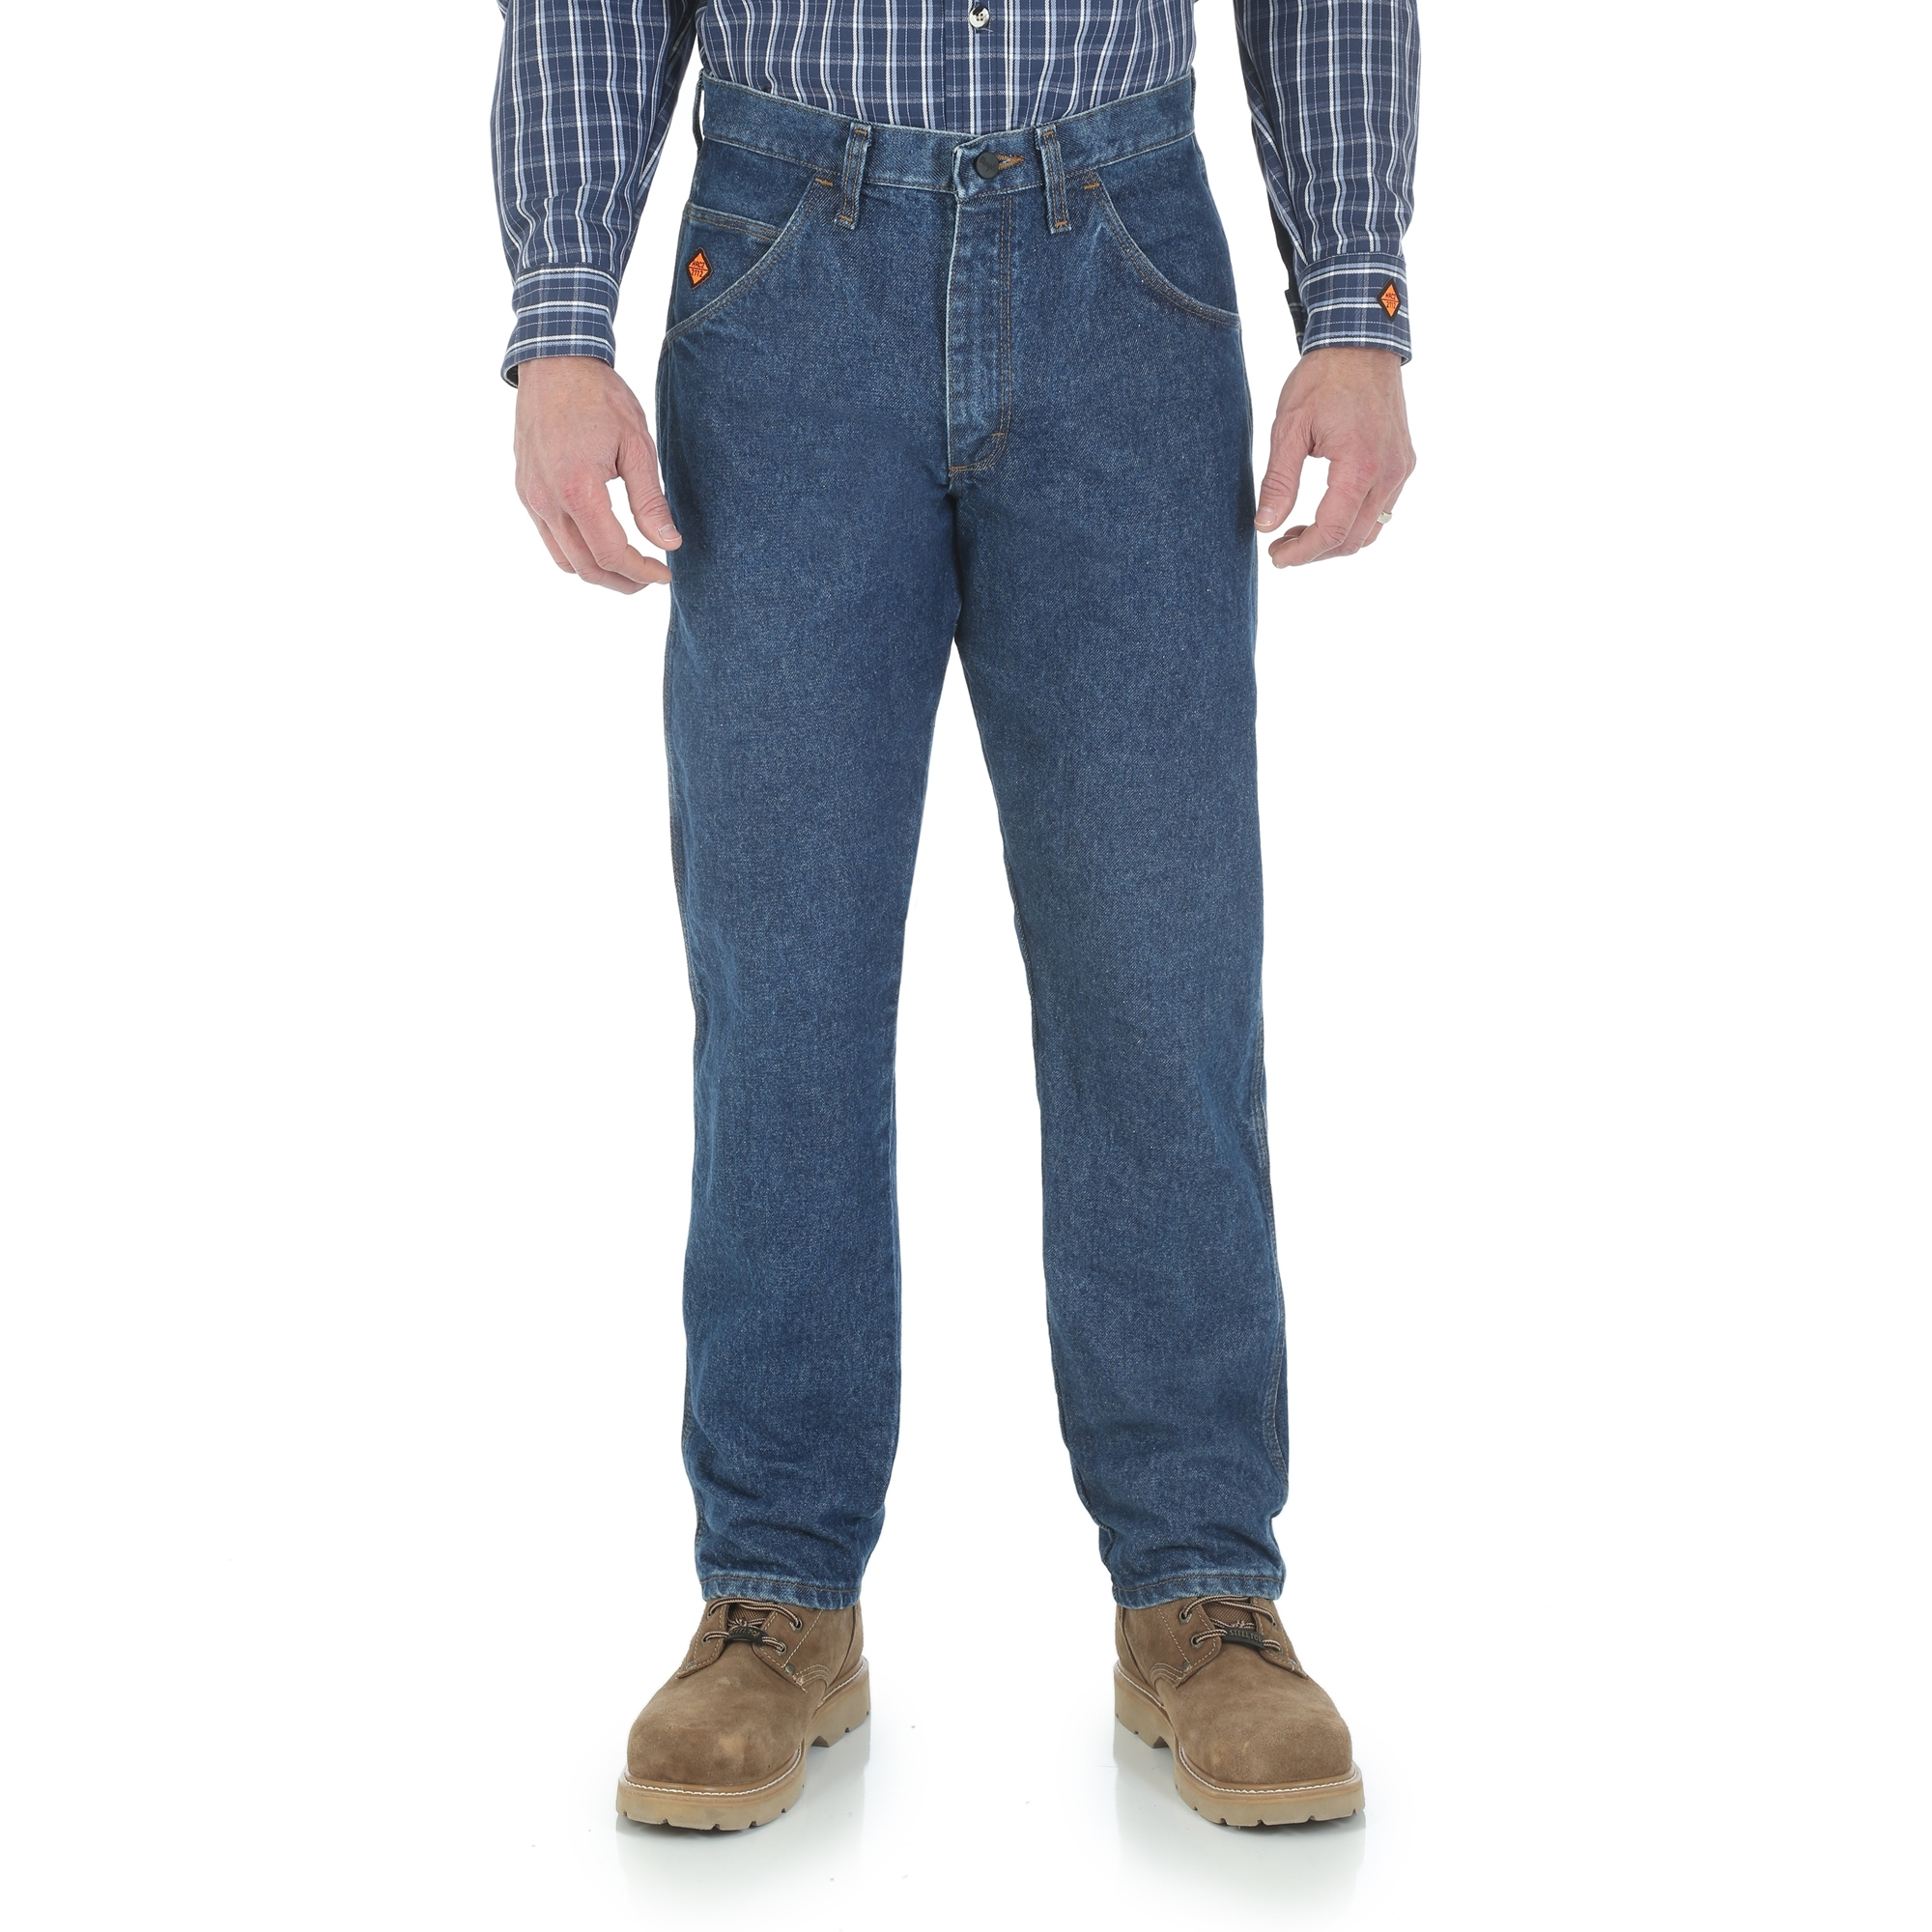 Wrangler Fr Riggs Workwear Relaxed Fit Jeans Fr3w050